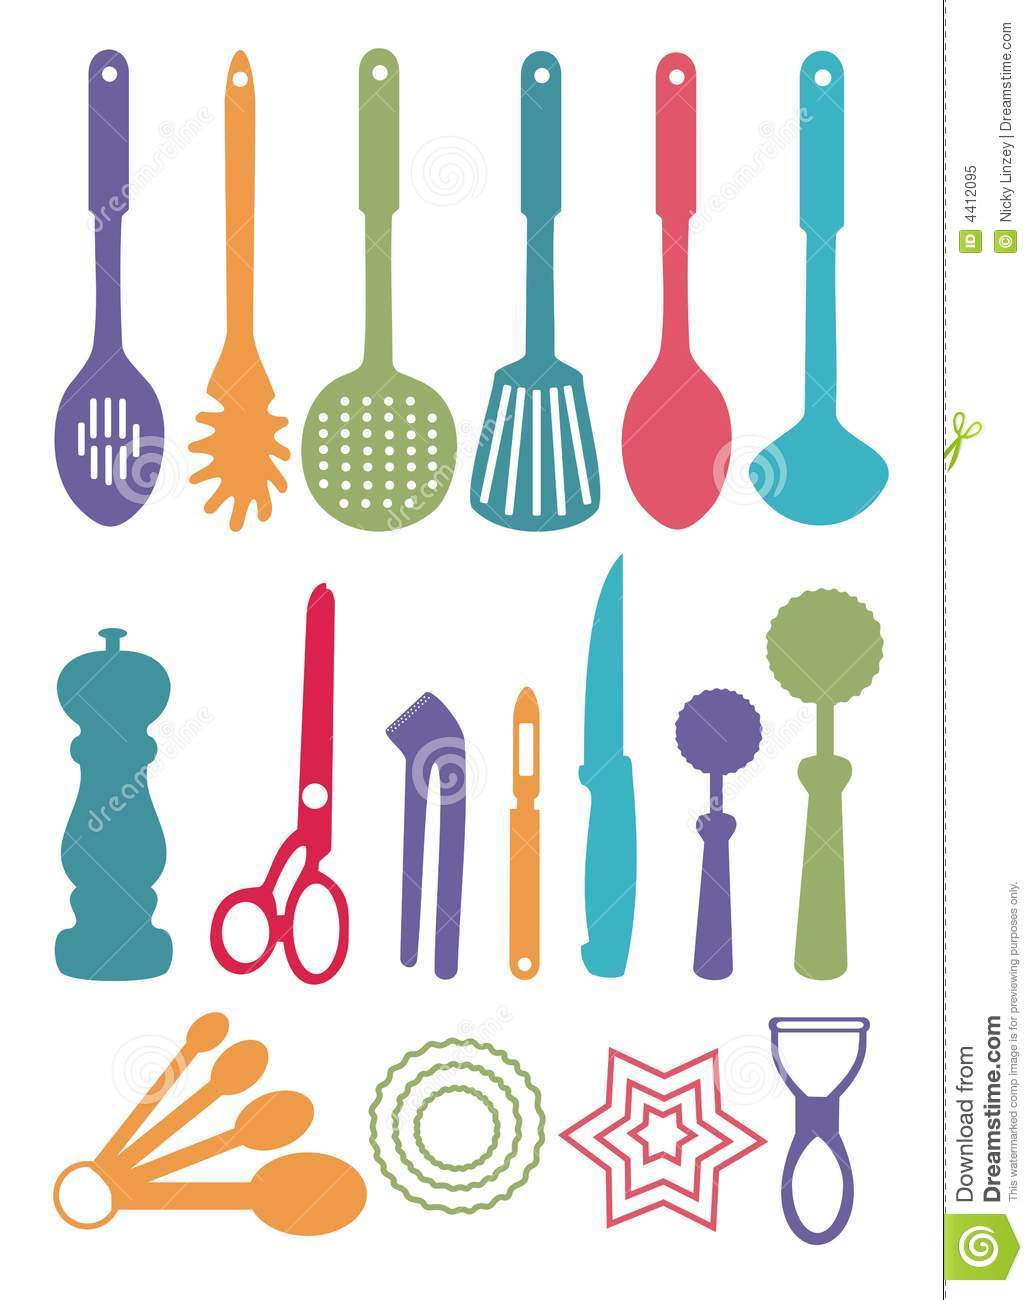 Clipart Kitchen Utensils And Objects Stock Illustration